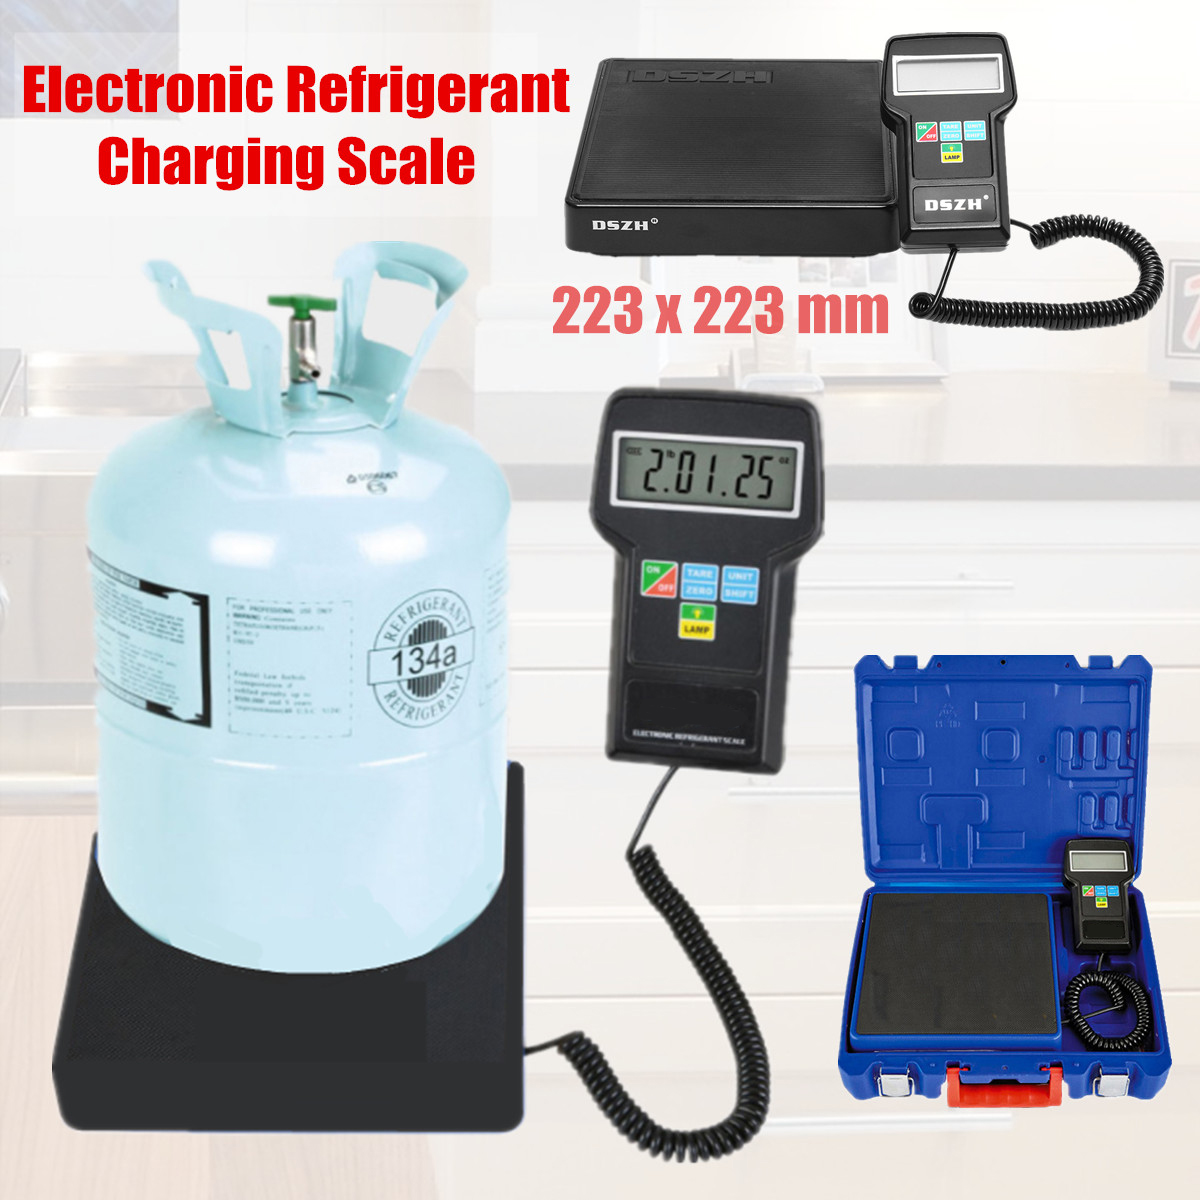 7 Digits Display Electronic Refrigerant Charging Scale Precision Car Refrigerant Weighing Weight HVAC With English Instruction